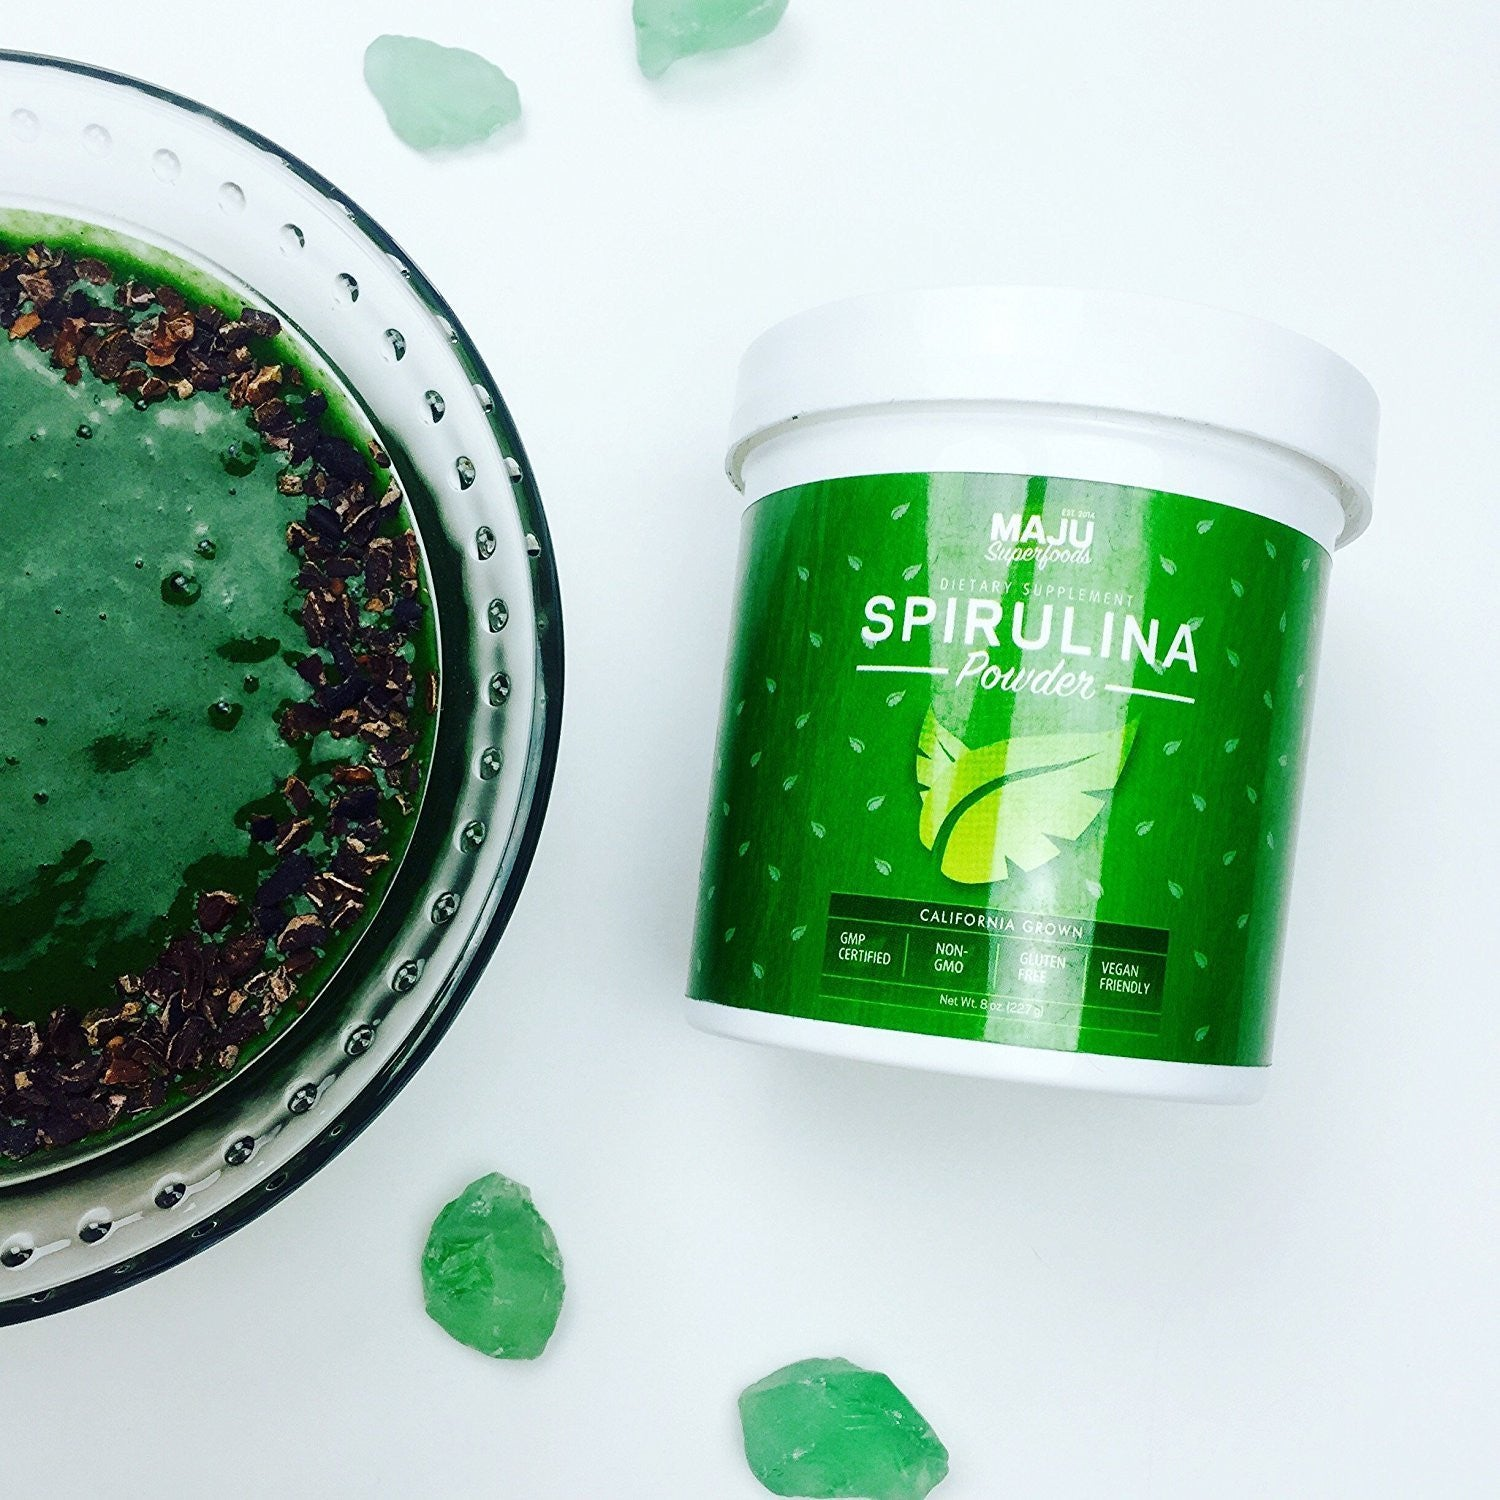 Spirulina Powder (2 lb.): Non-Irradiated, Non-GMO, Vegan, Gluten-free - Maju Superfoods